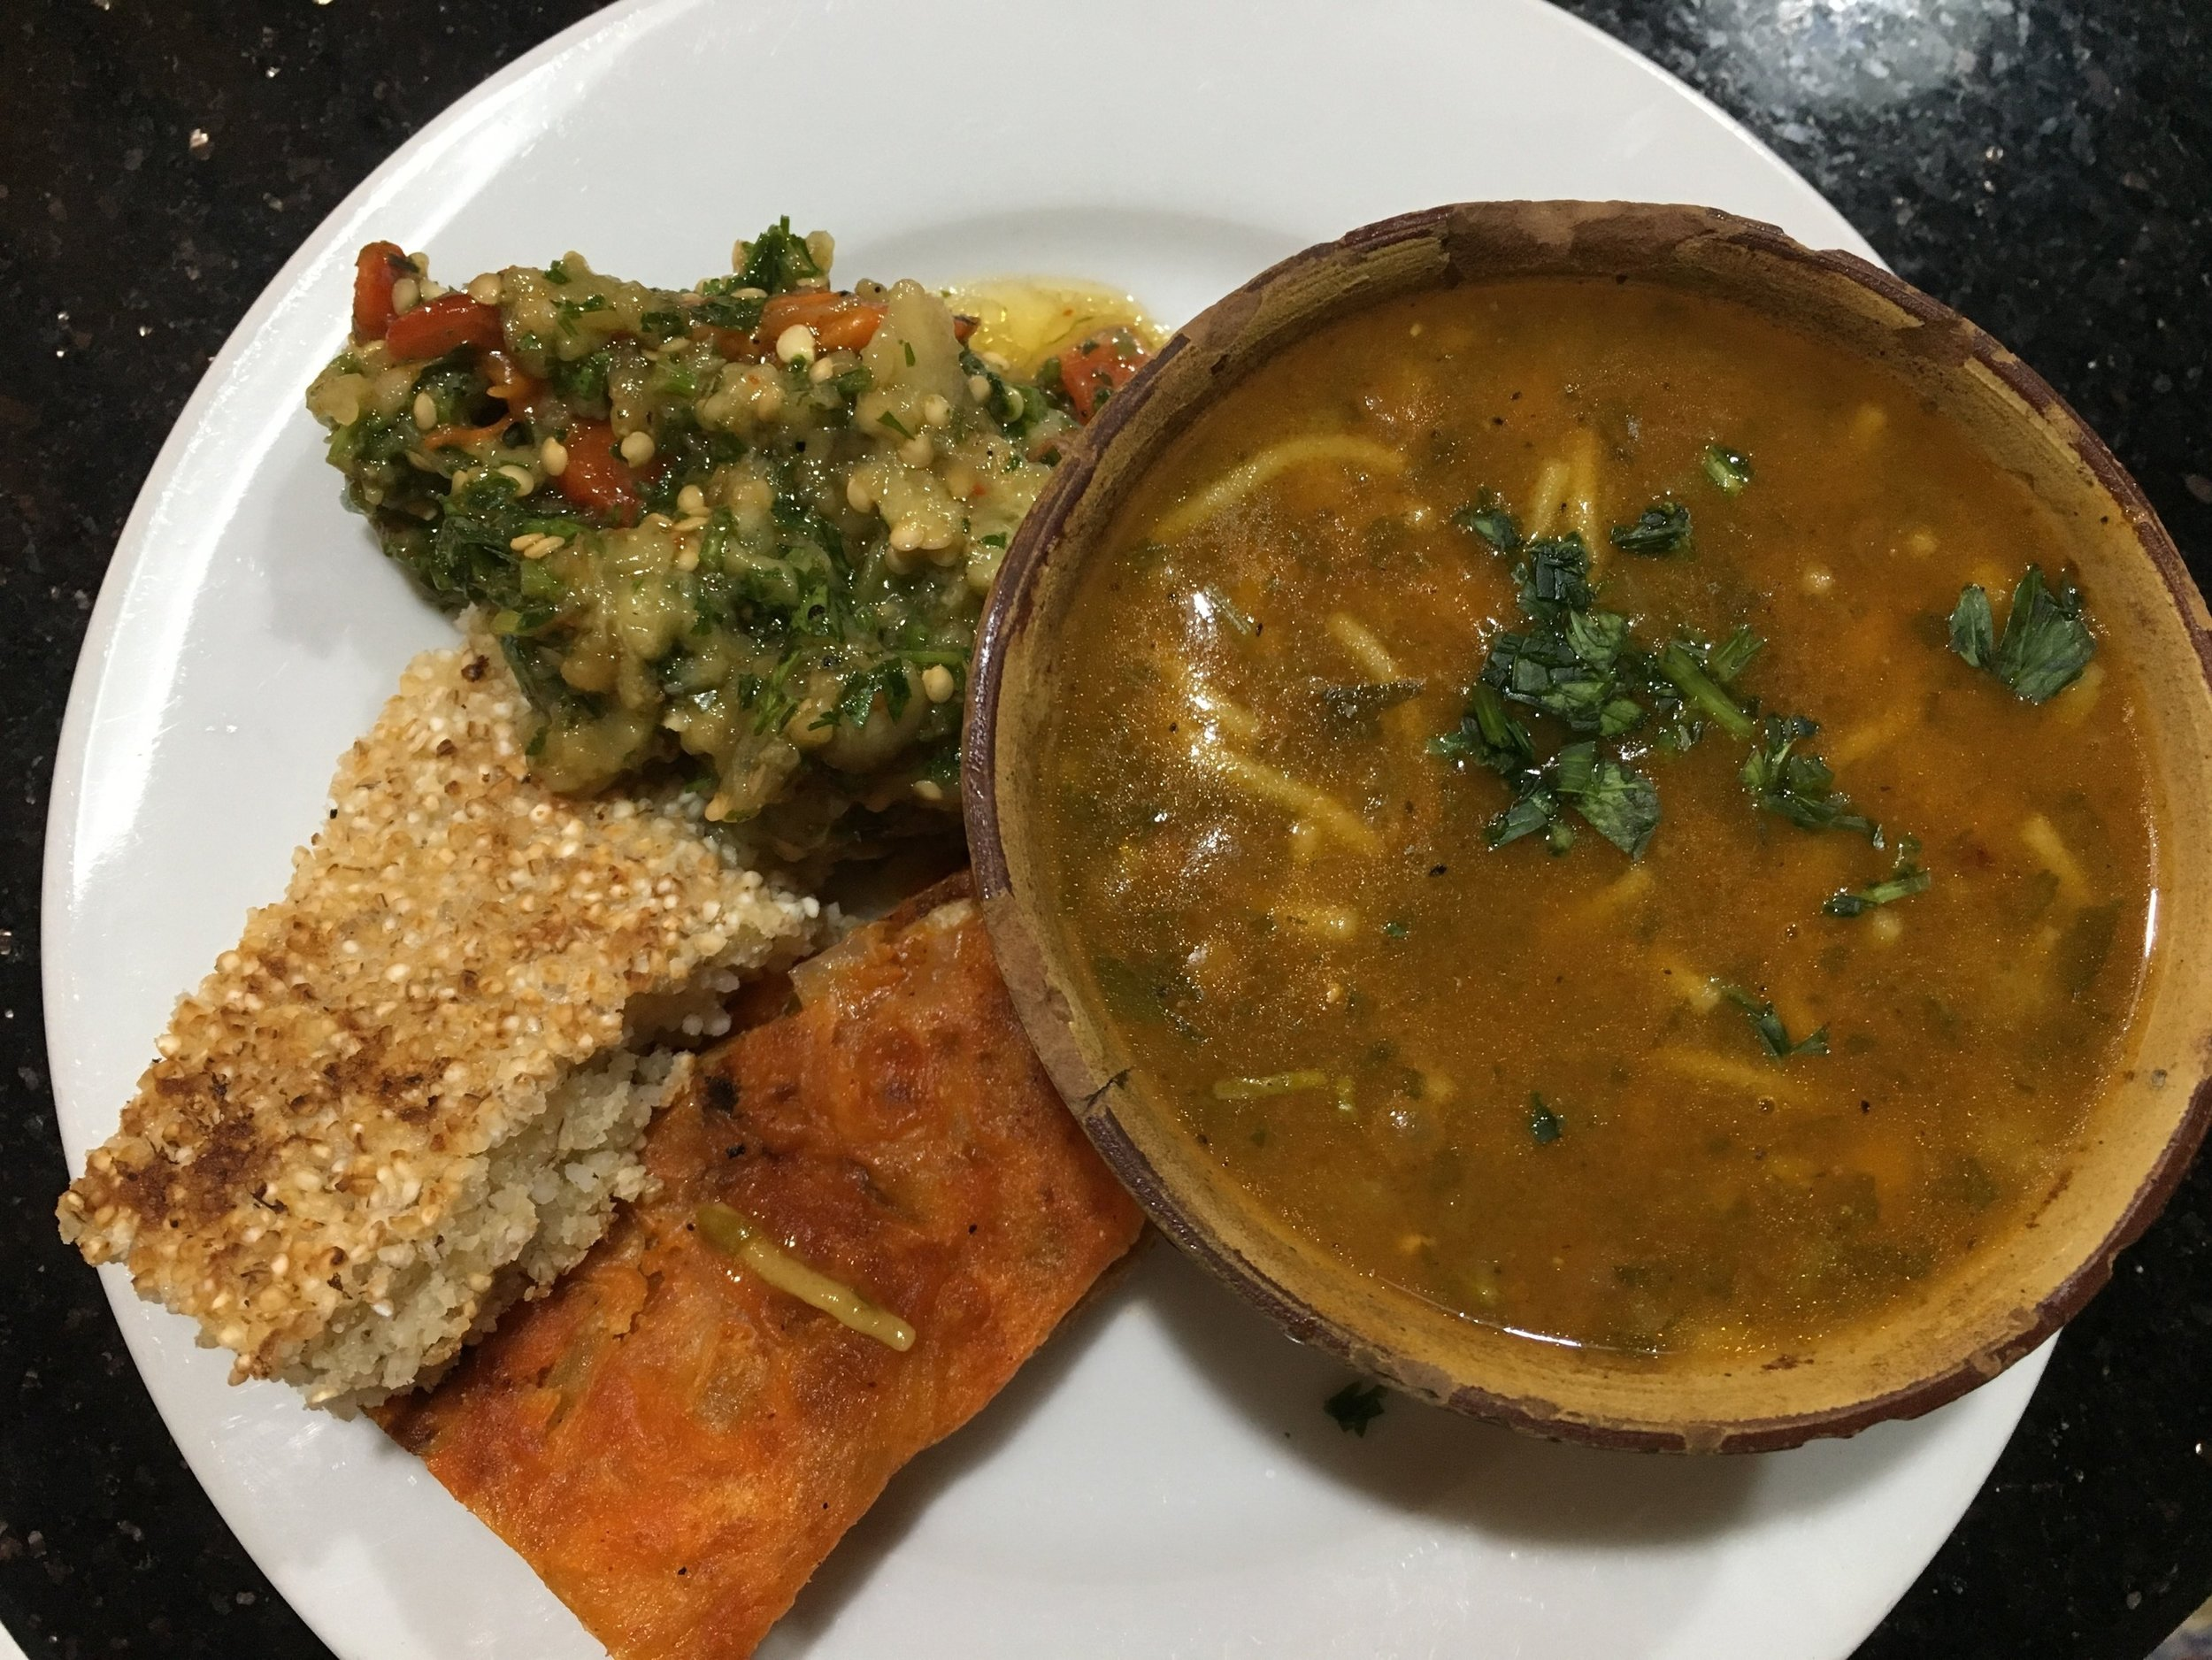 Zalouk egg plant salad is served with mahrash and spicy bread and harira soup.